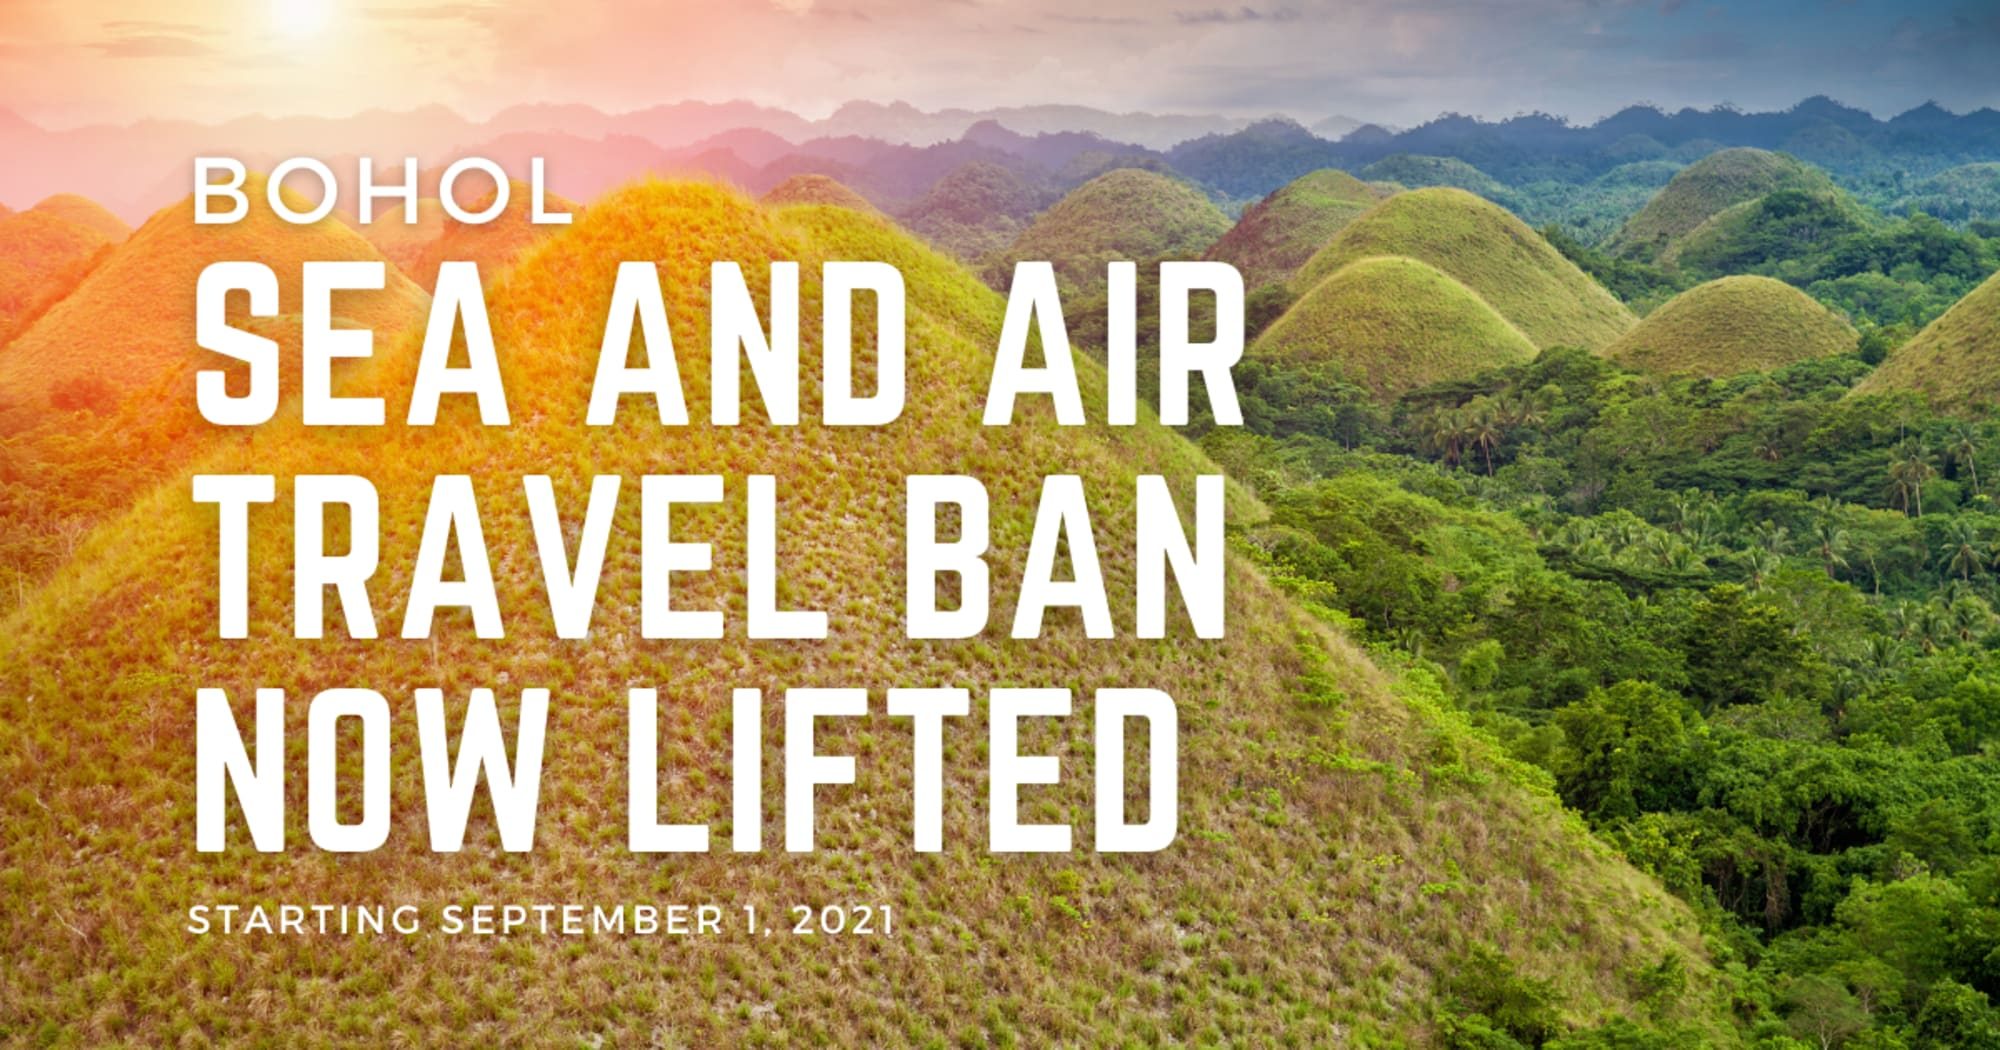 The sea and air travel ban in Bohol is now lifted starting September 1